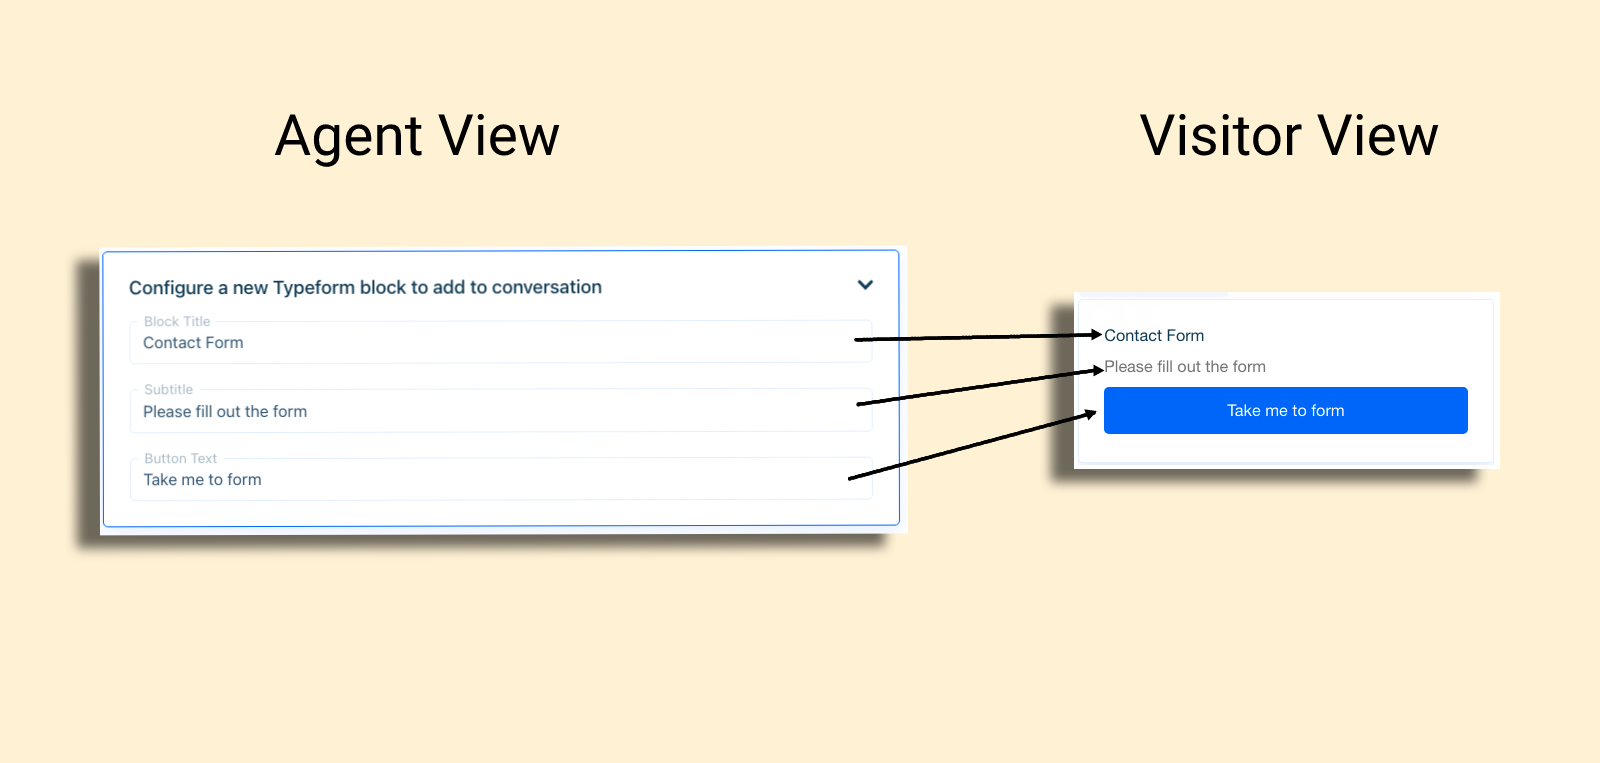 agent-view-vs-visitor-view-ce5dd6405b57b9972f5d1961.png